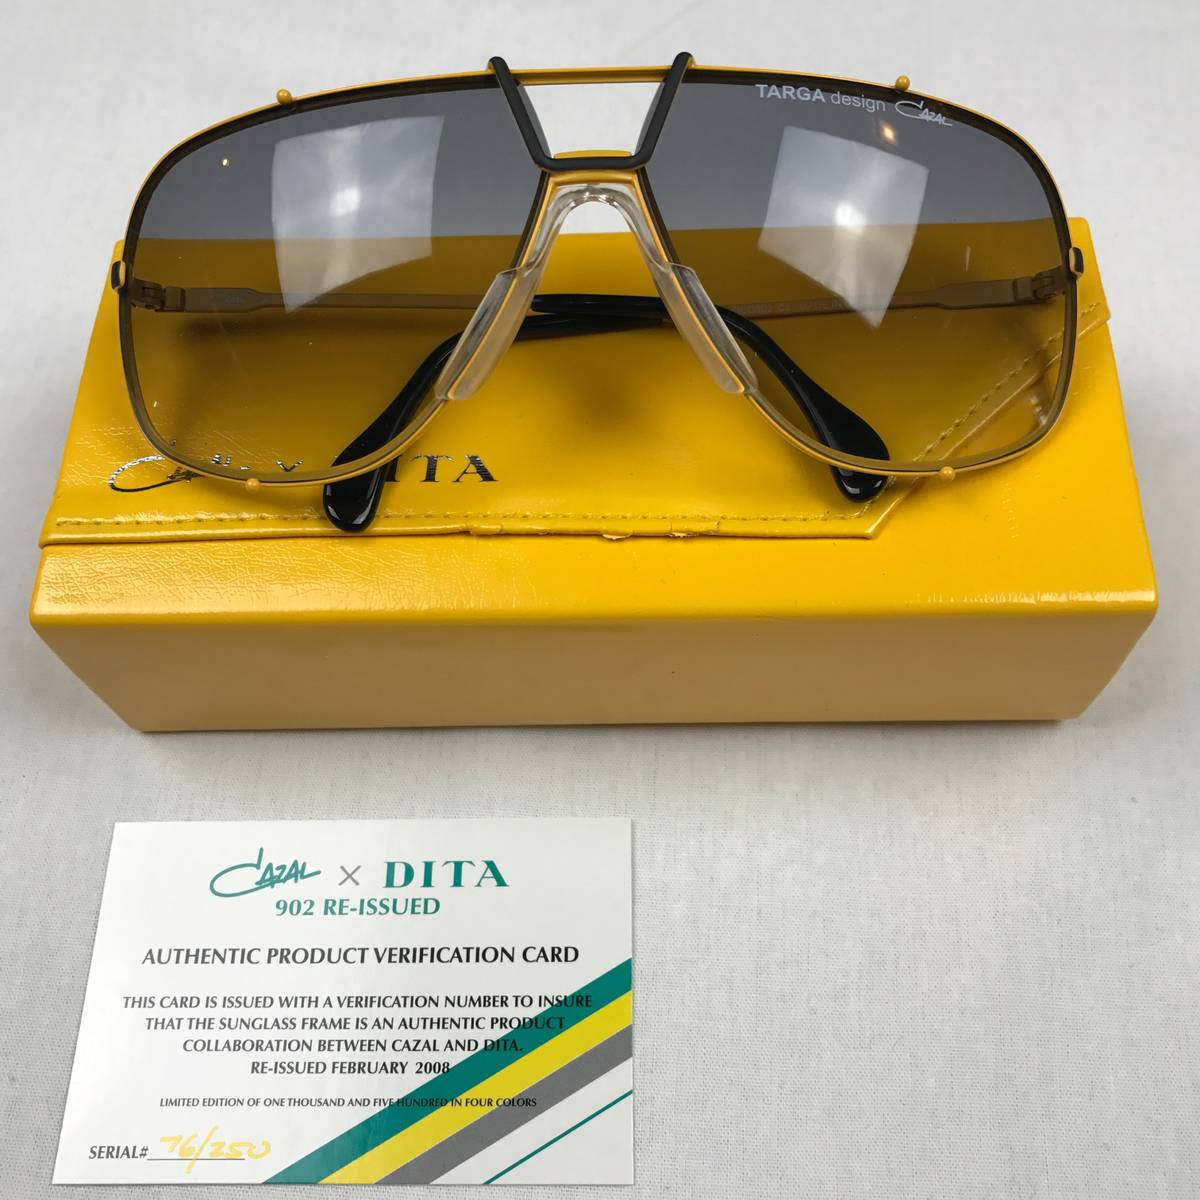 b8511a6b0bf Cazal Dita X Cazal 902 Yellow Limited Edition Reissue Size one size -  Sunglasses for Sale - Grailed